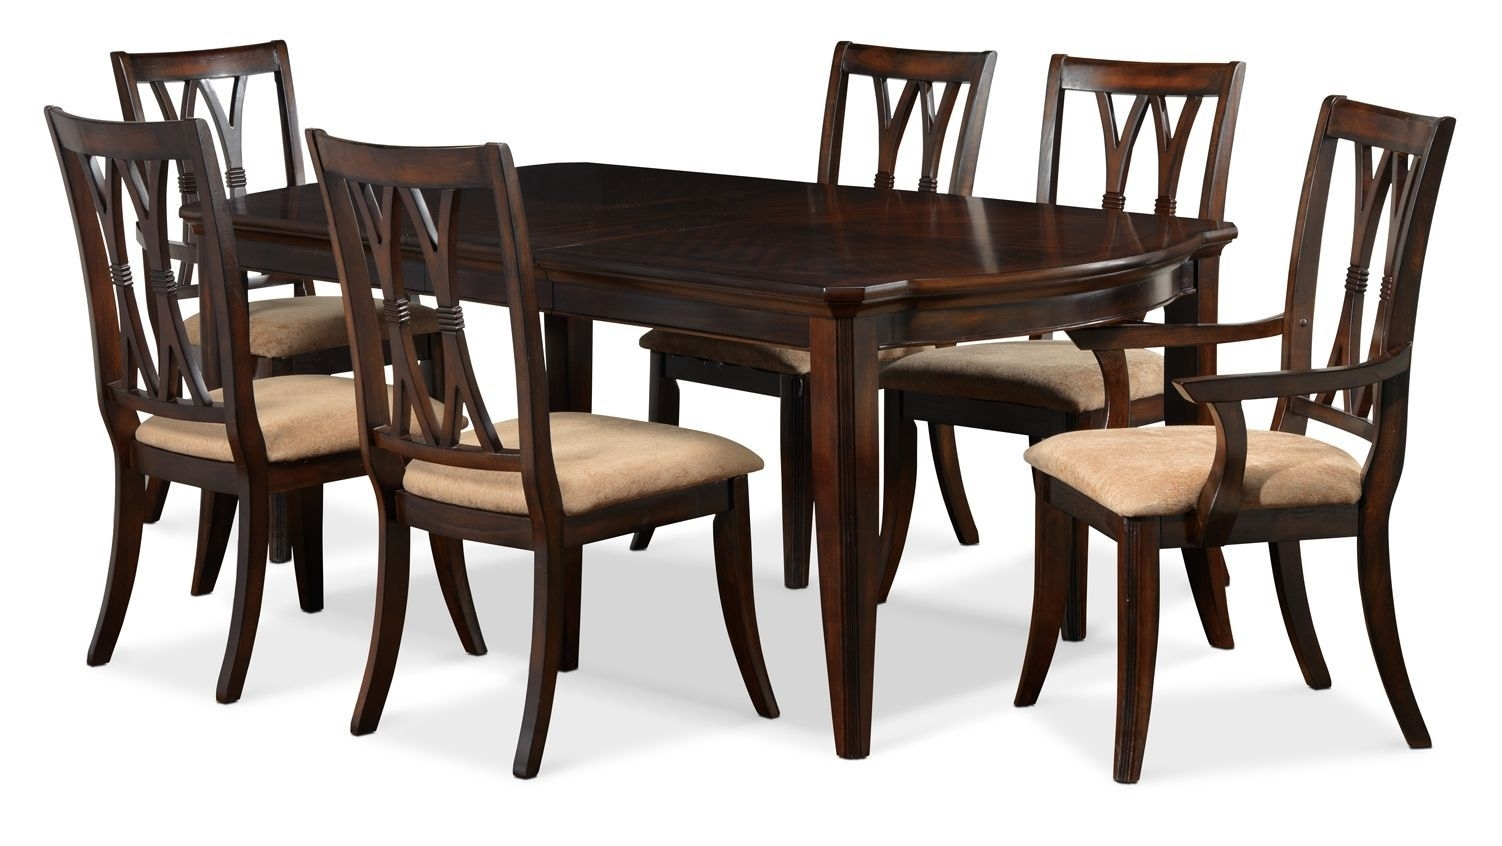 Incredible King George Dining Room 7 Pc Dining Set Leon Overwhelming Within Latest Leon Dining Tables (View 17 of 20)